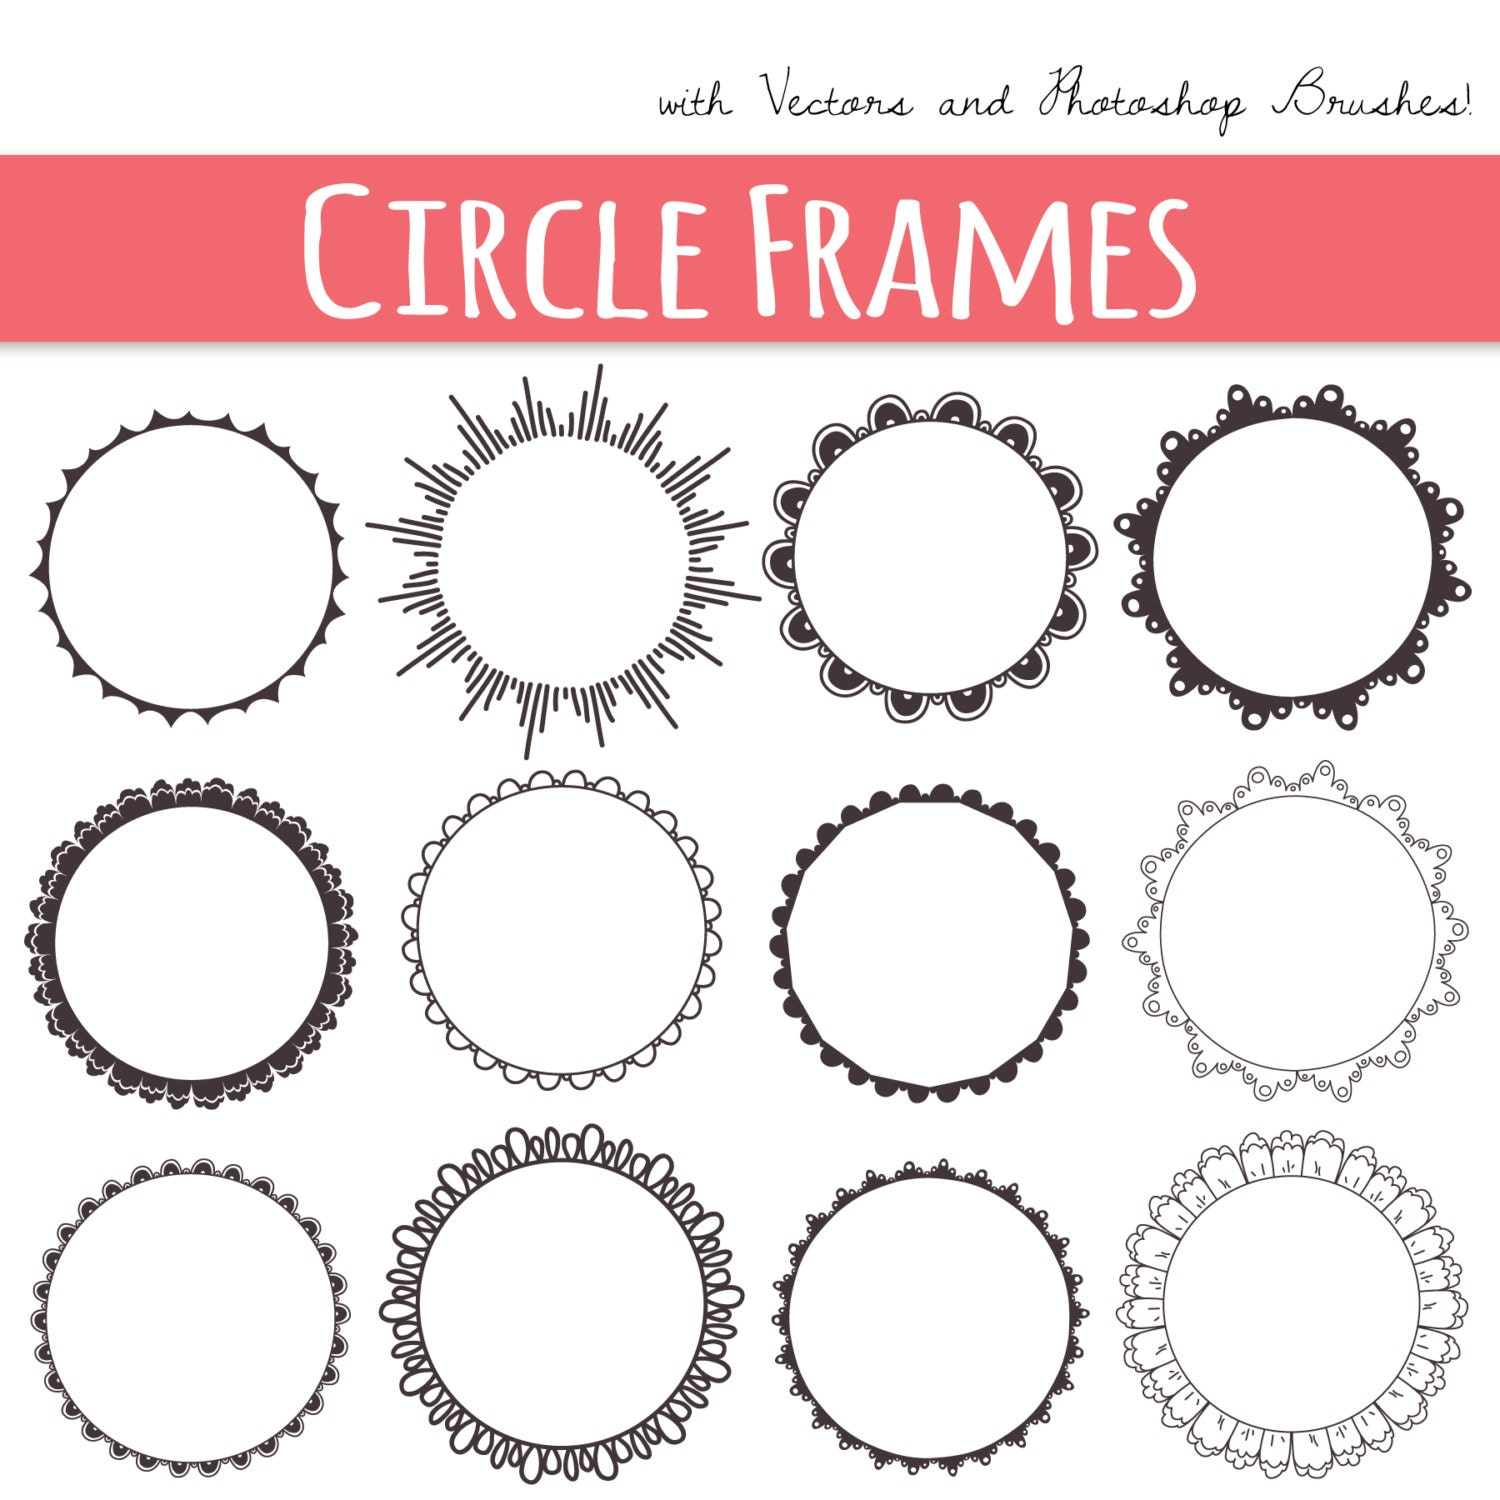 Clip Art Circle Frames Digital Frames Decorative